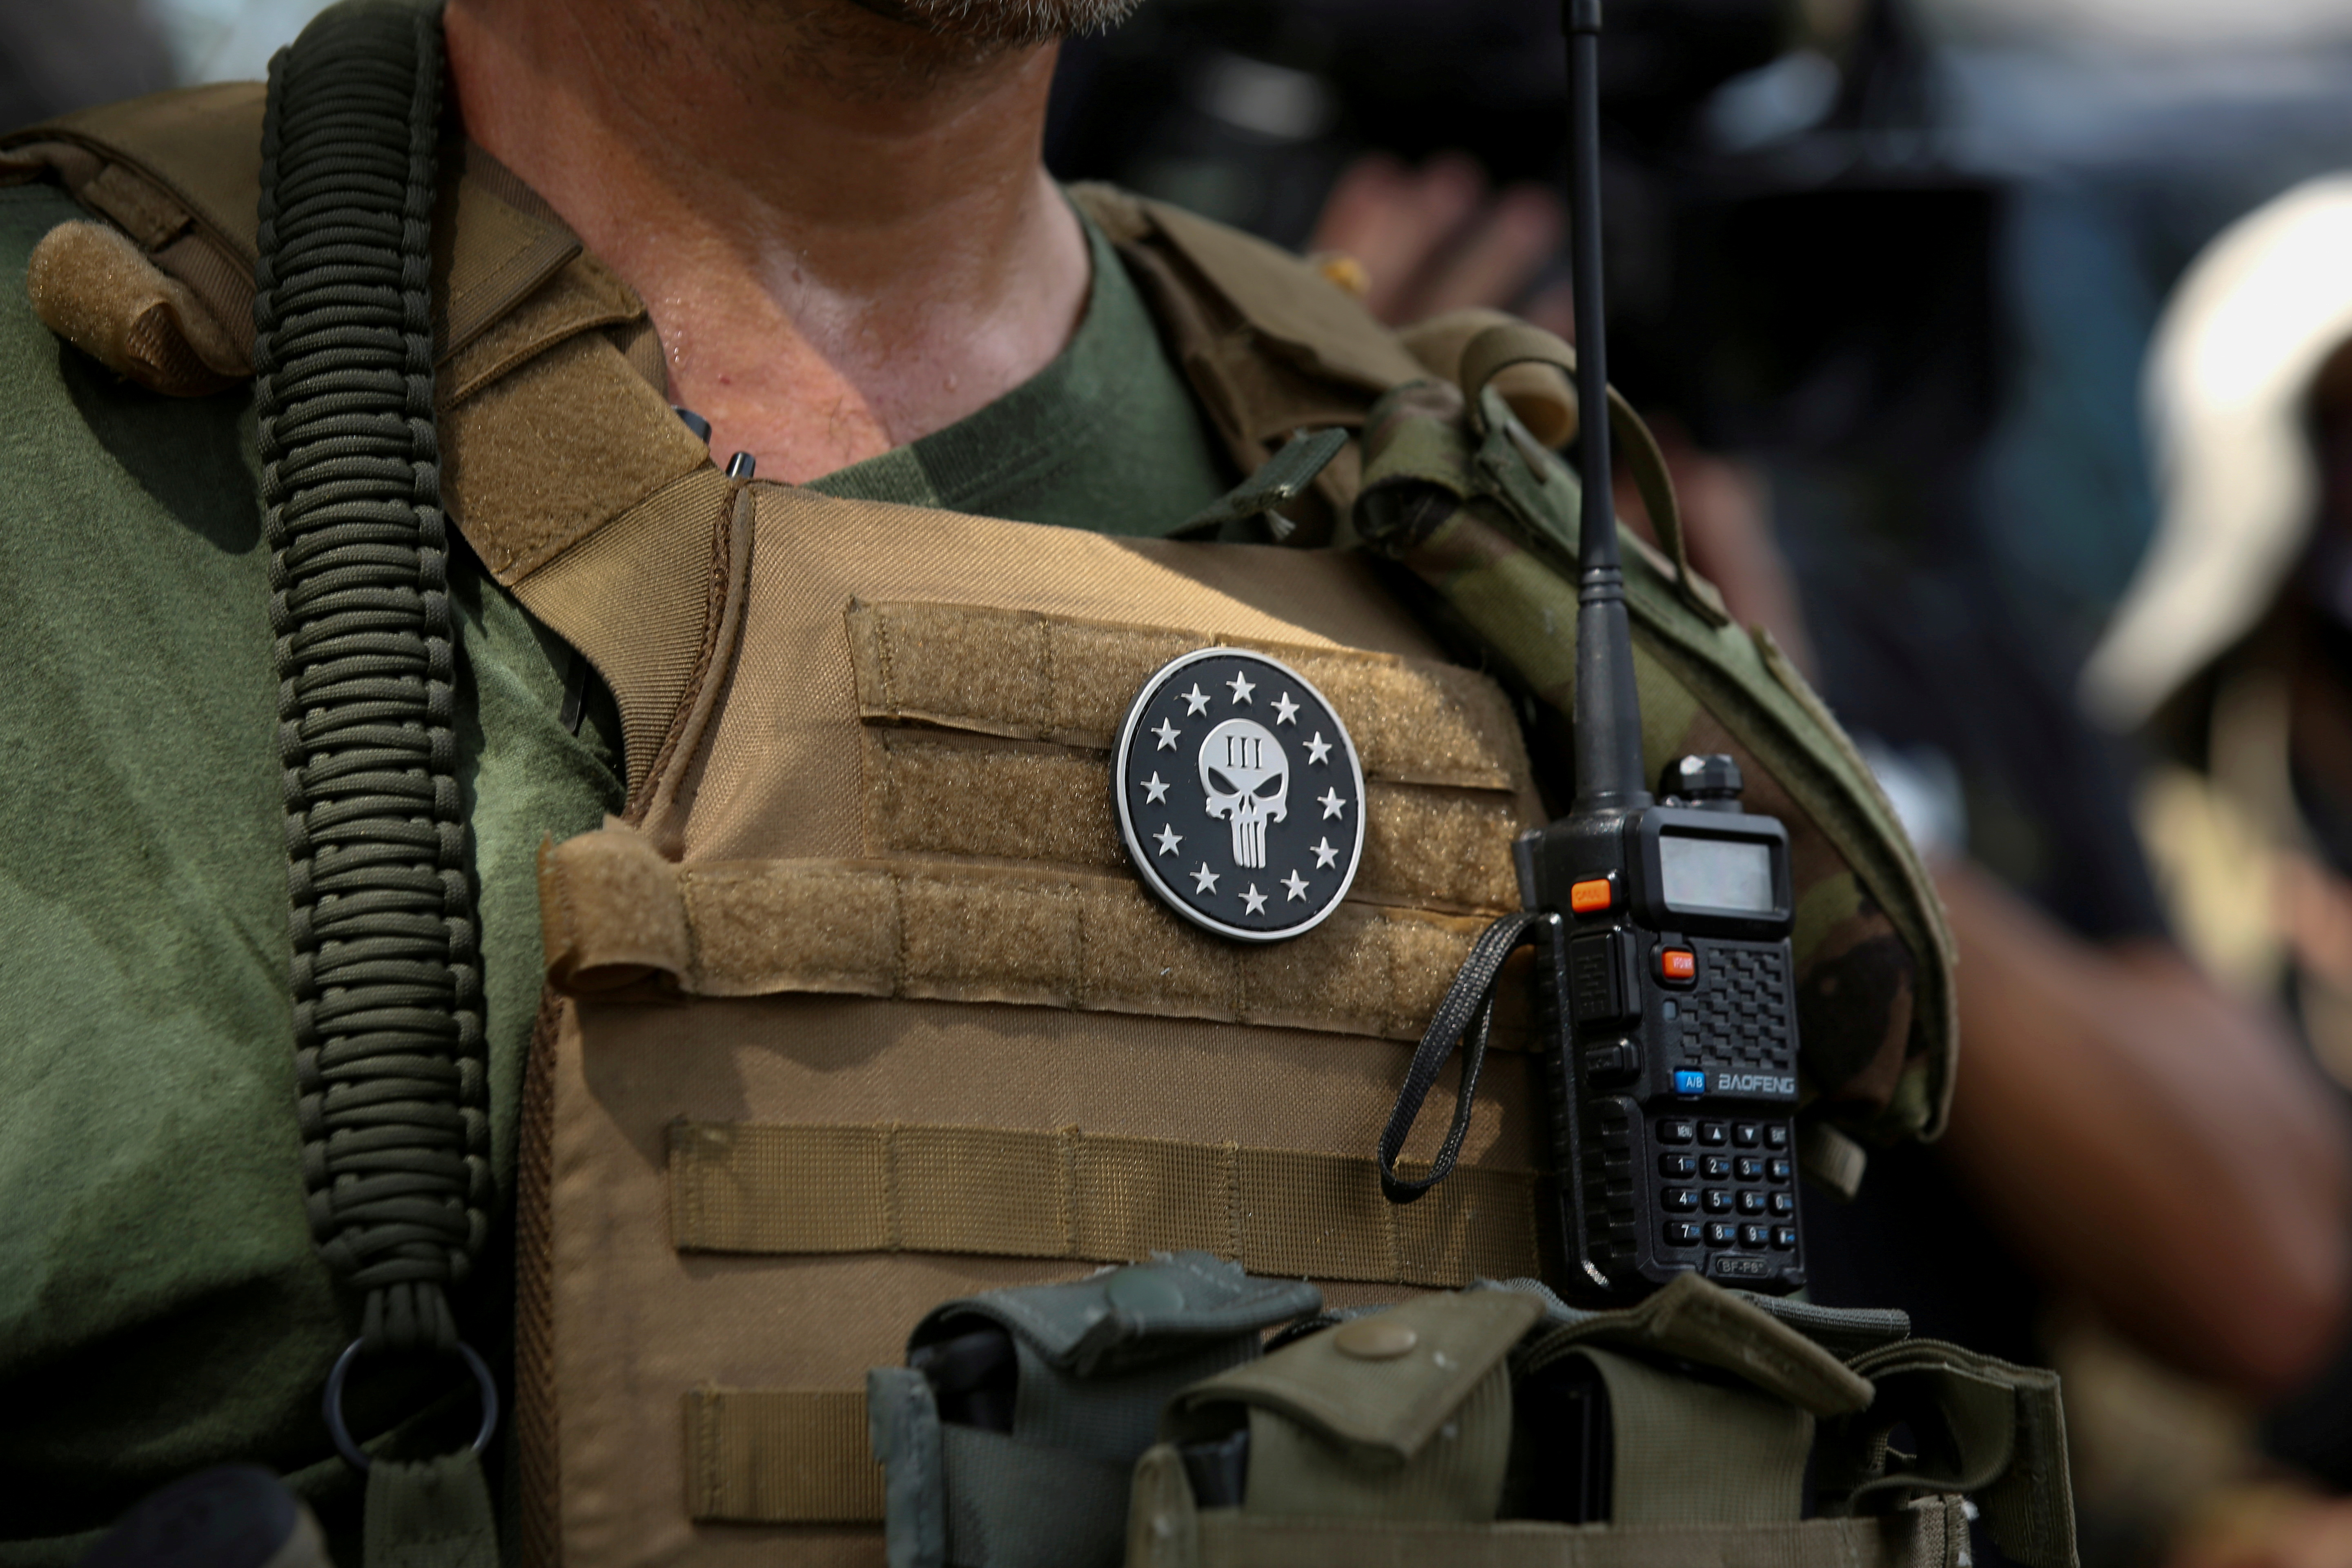 A militia member with body armor and a Three Percenters militia patch stands in Stone Mountain as various militia groups stage rallies at Stone Mountain, Georgia, U.S. August 15, 2020.  REUTERS/Dustin Chambers/File Photo